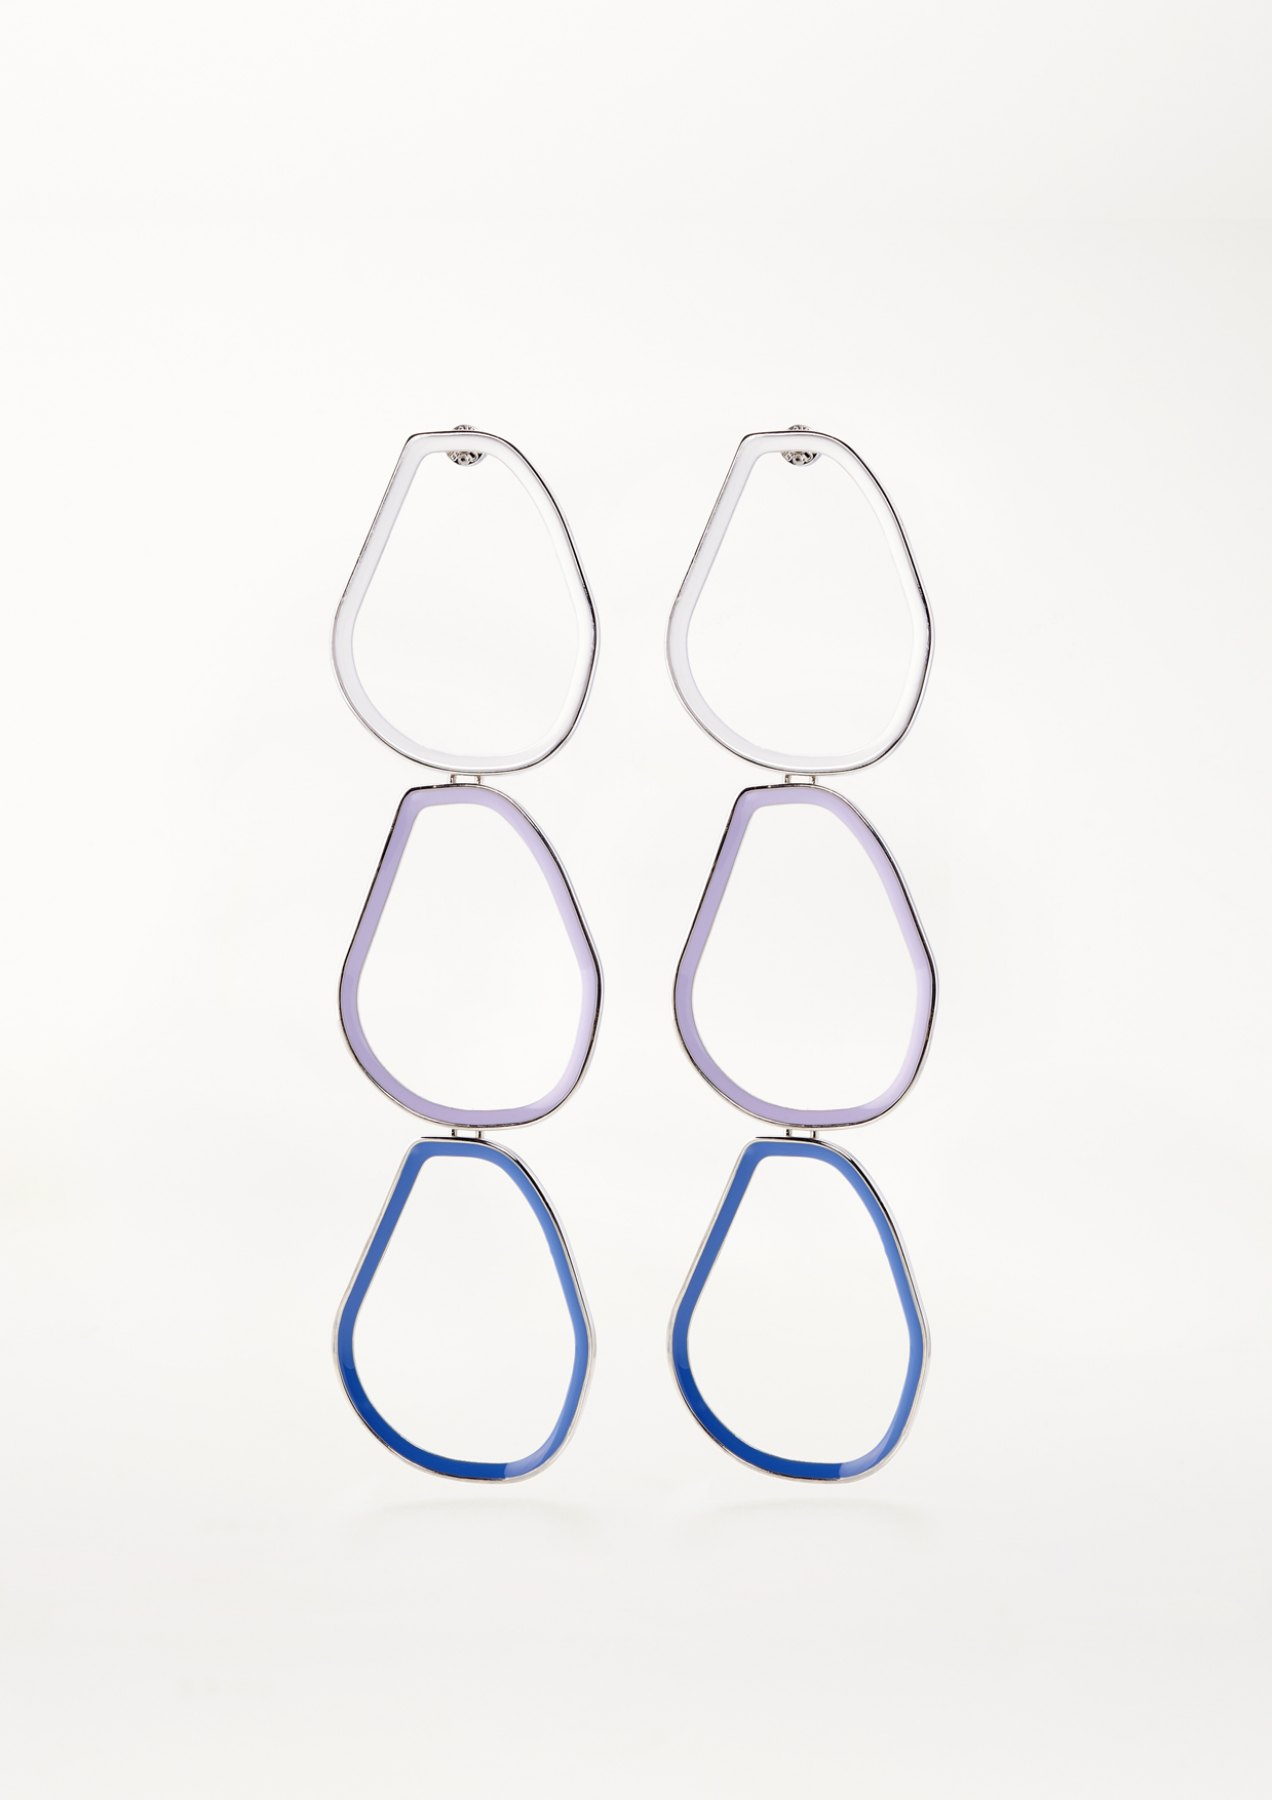 xenia bous jewellery coloured stone 05 earrings multicolour white lilac blue